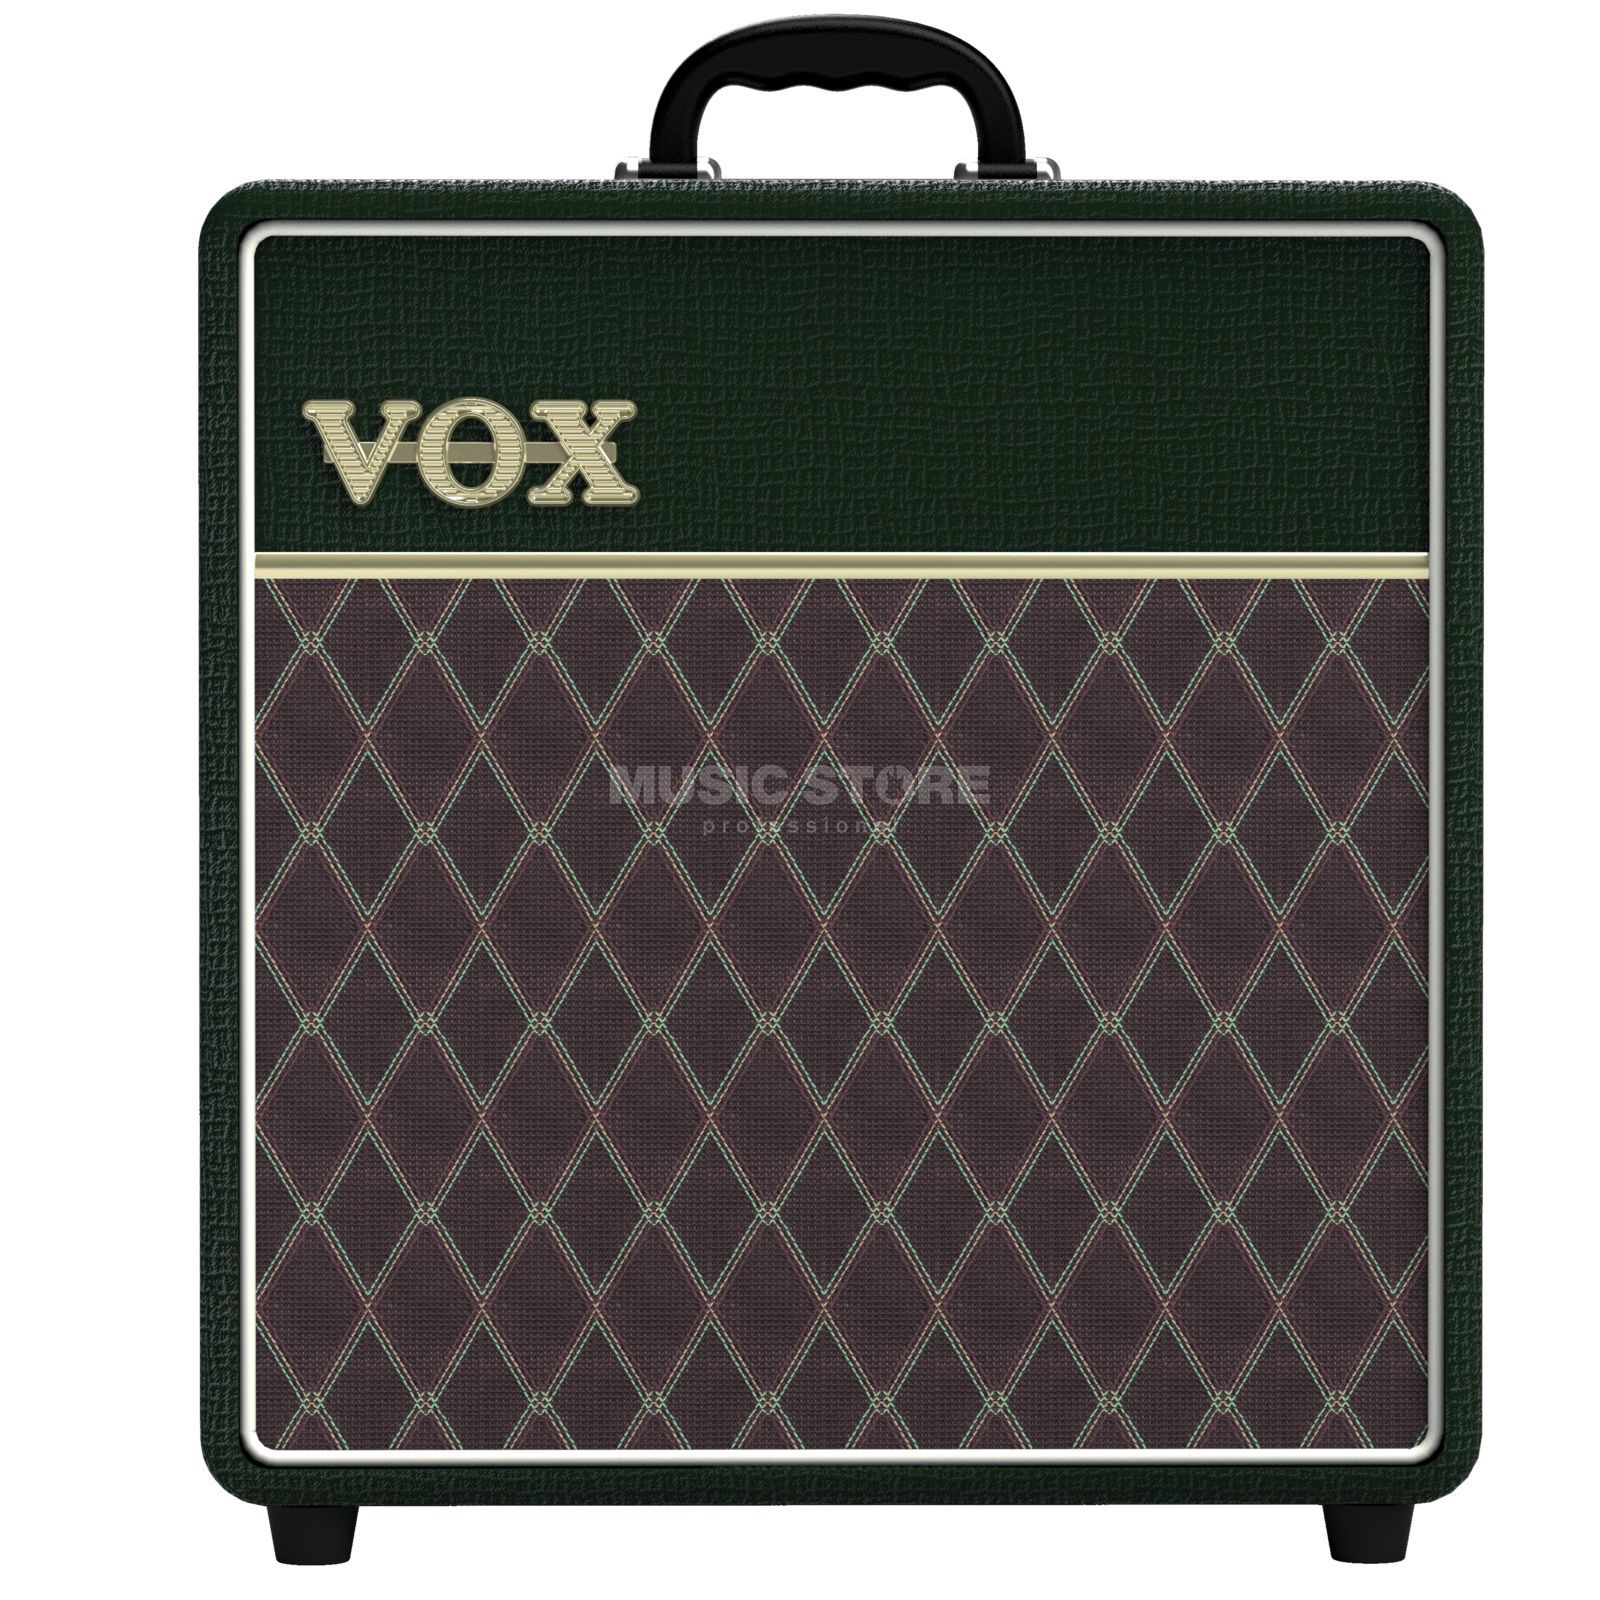 VOX AC4C1-12 Limited Edition British Racing Green Produktbild